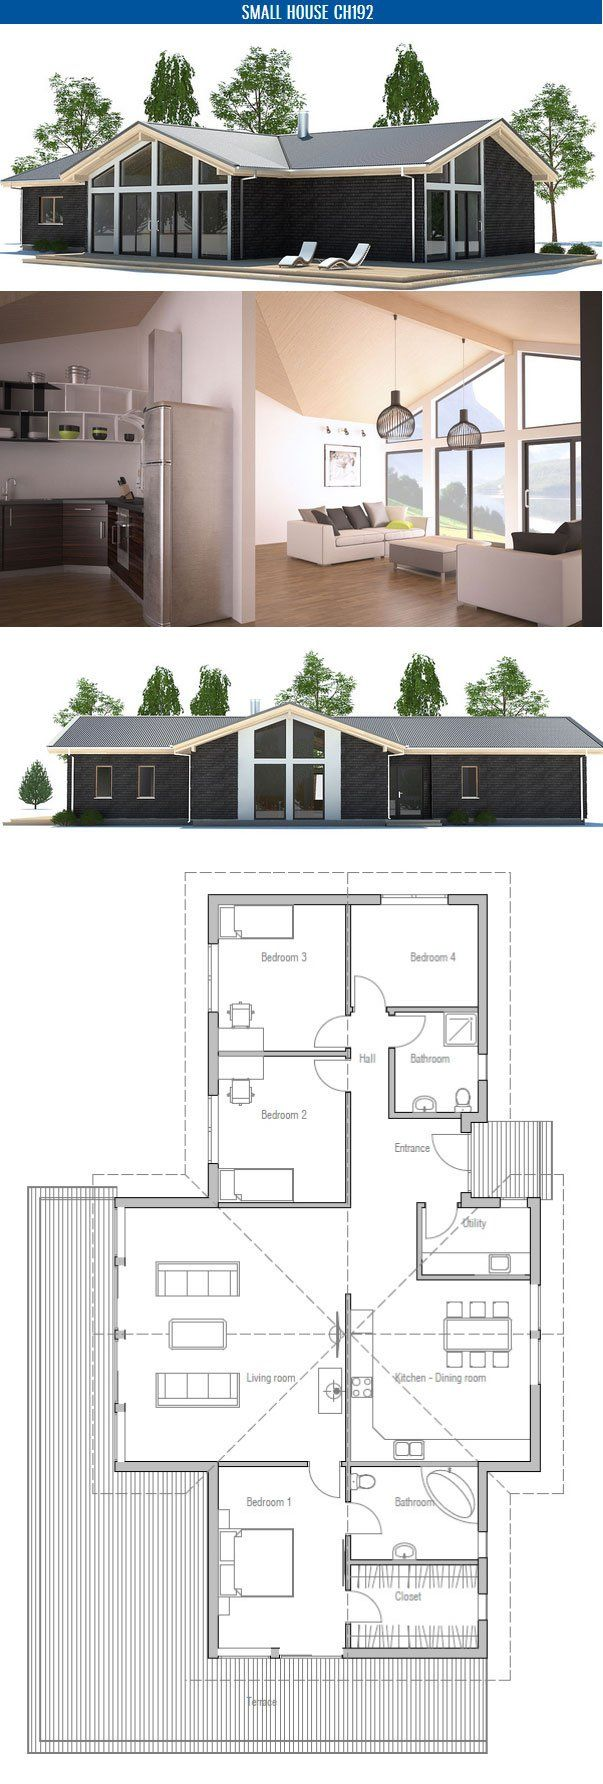 House Plan. Nice vaulted ceiling. Open planning. Floor Plan from ConceptHome.com